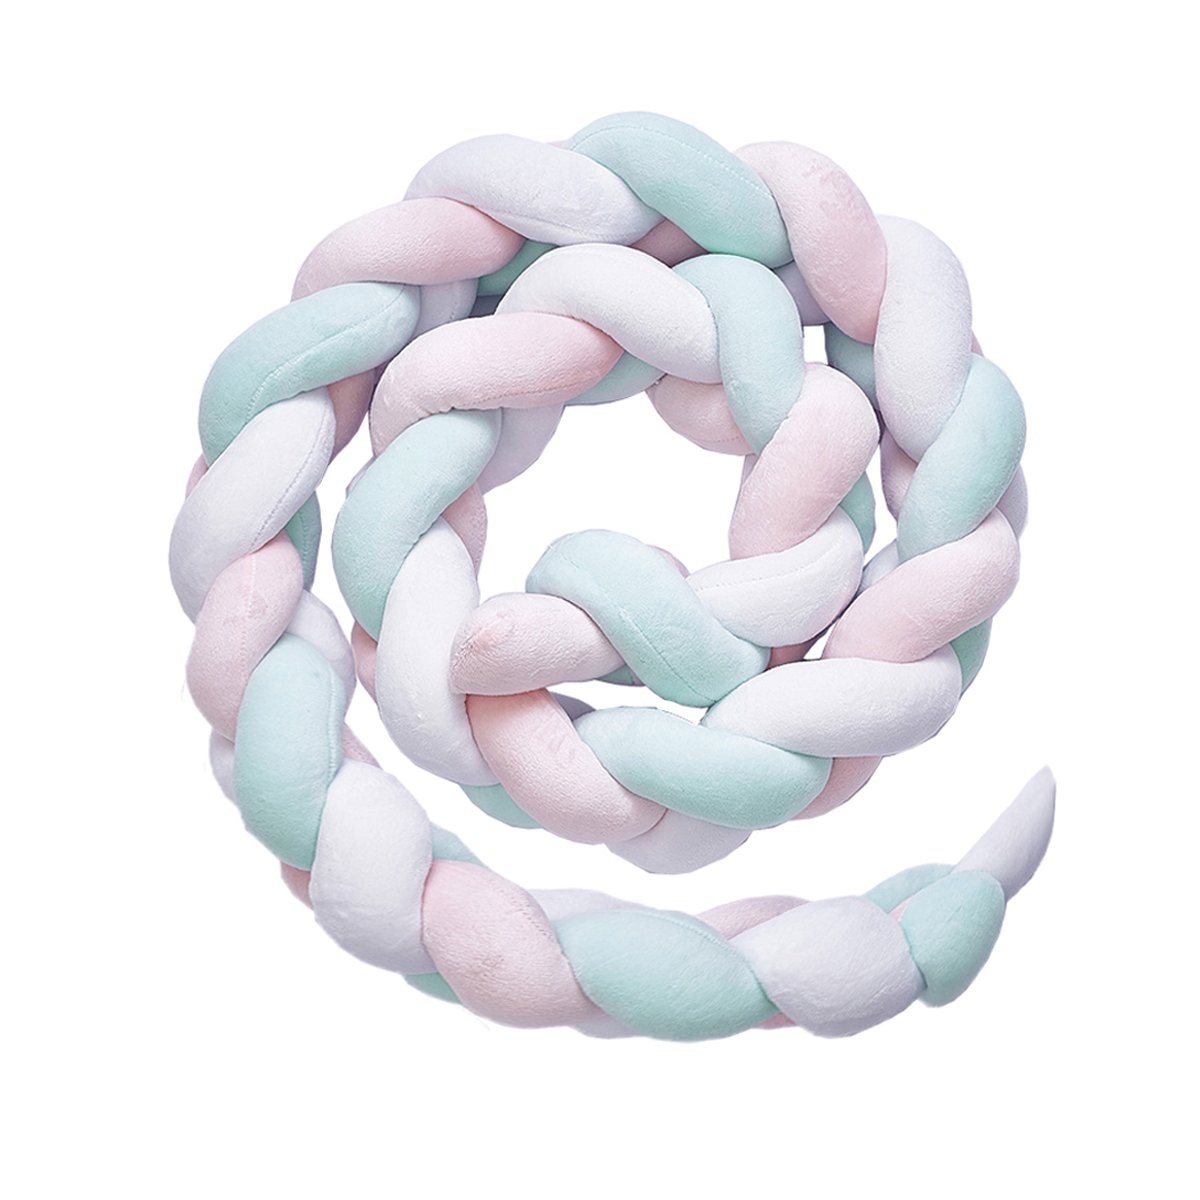 Baby Crib Bumper Cushion Plush Knot Pillow Babys Room Decoration DQMEN Braid Pillow White + Pink + Gray, 200cm//78inch